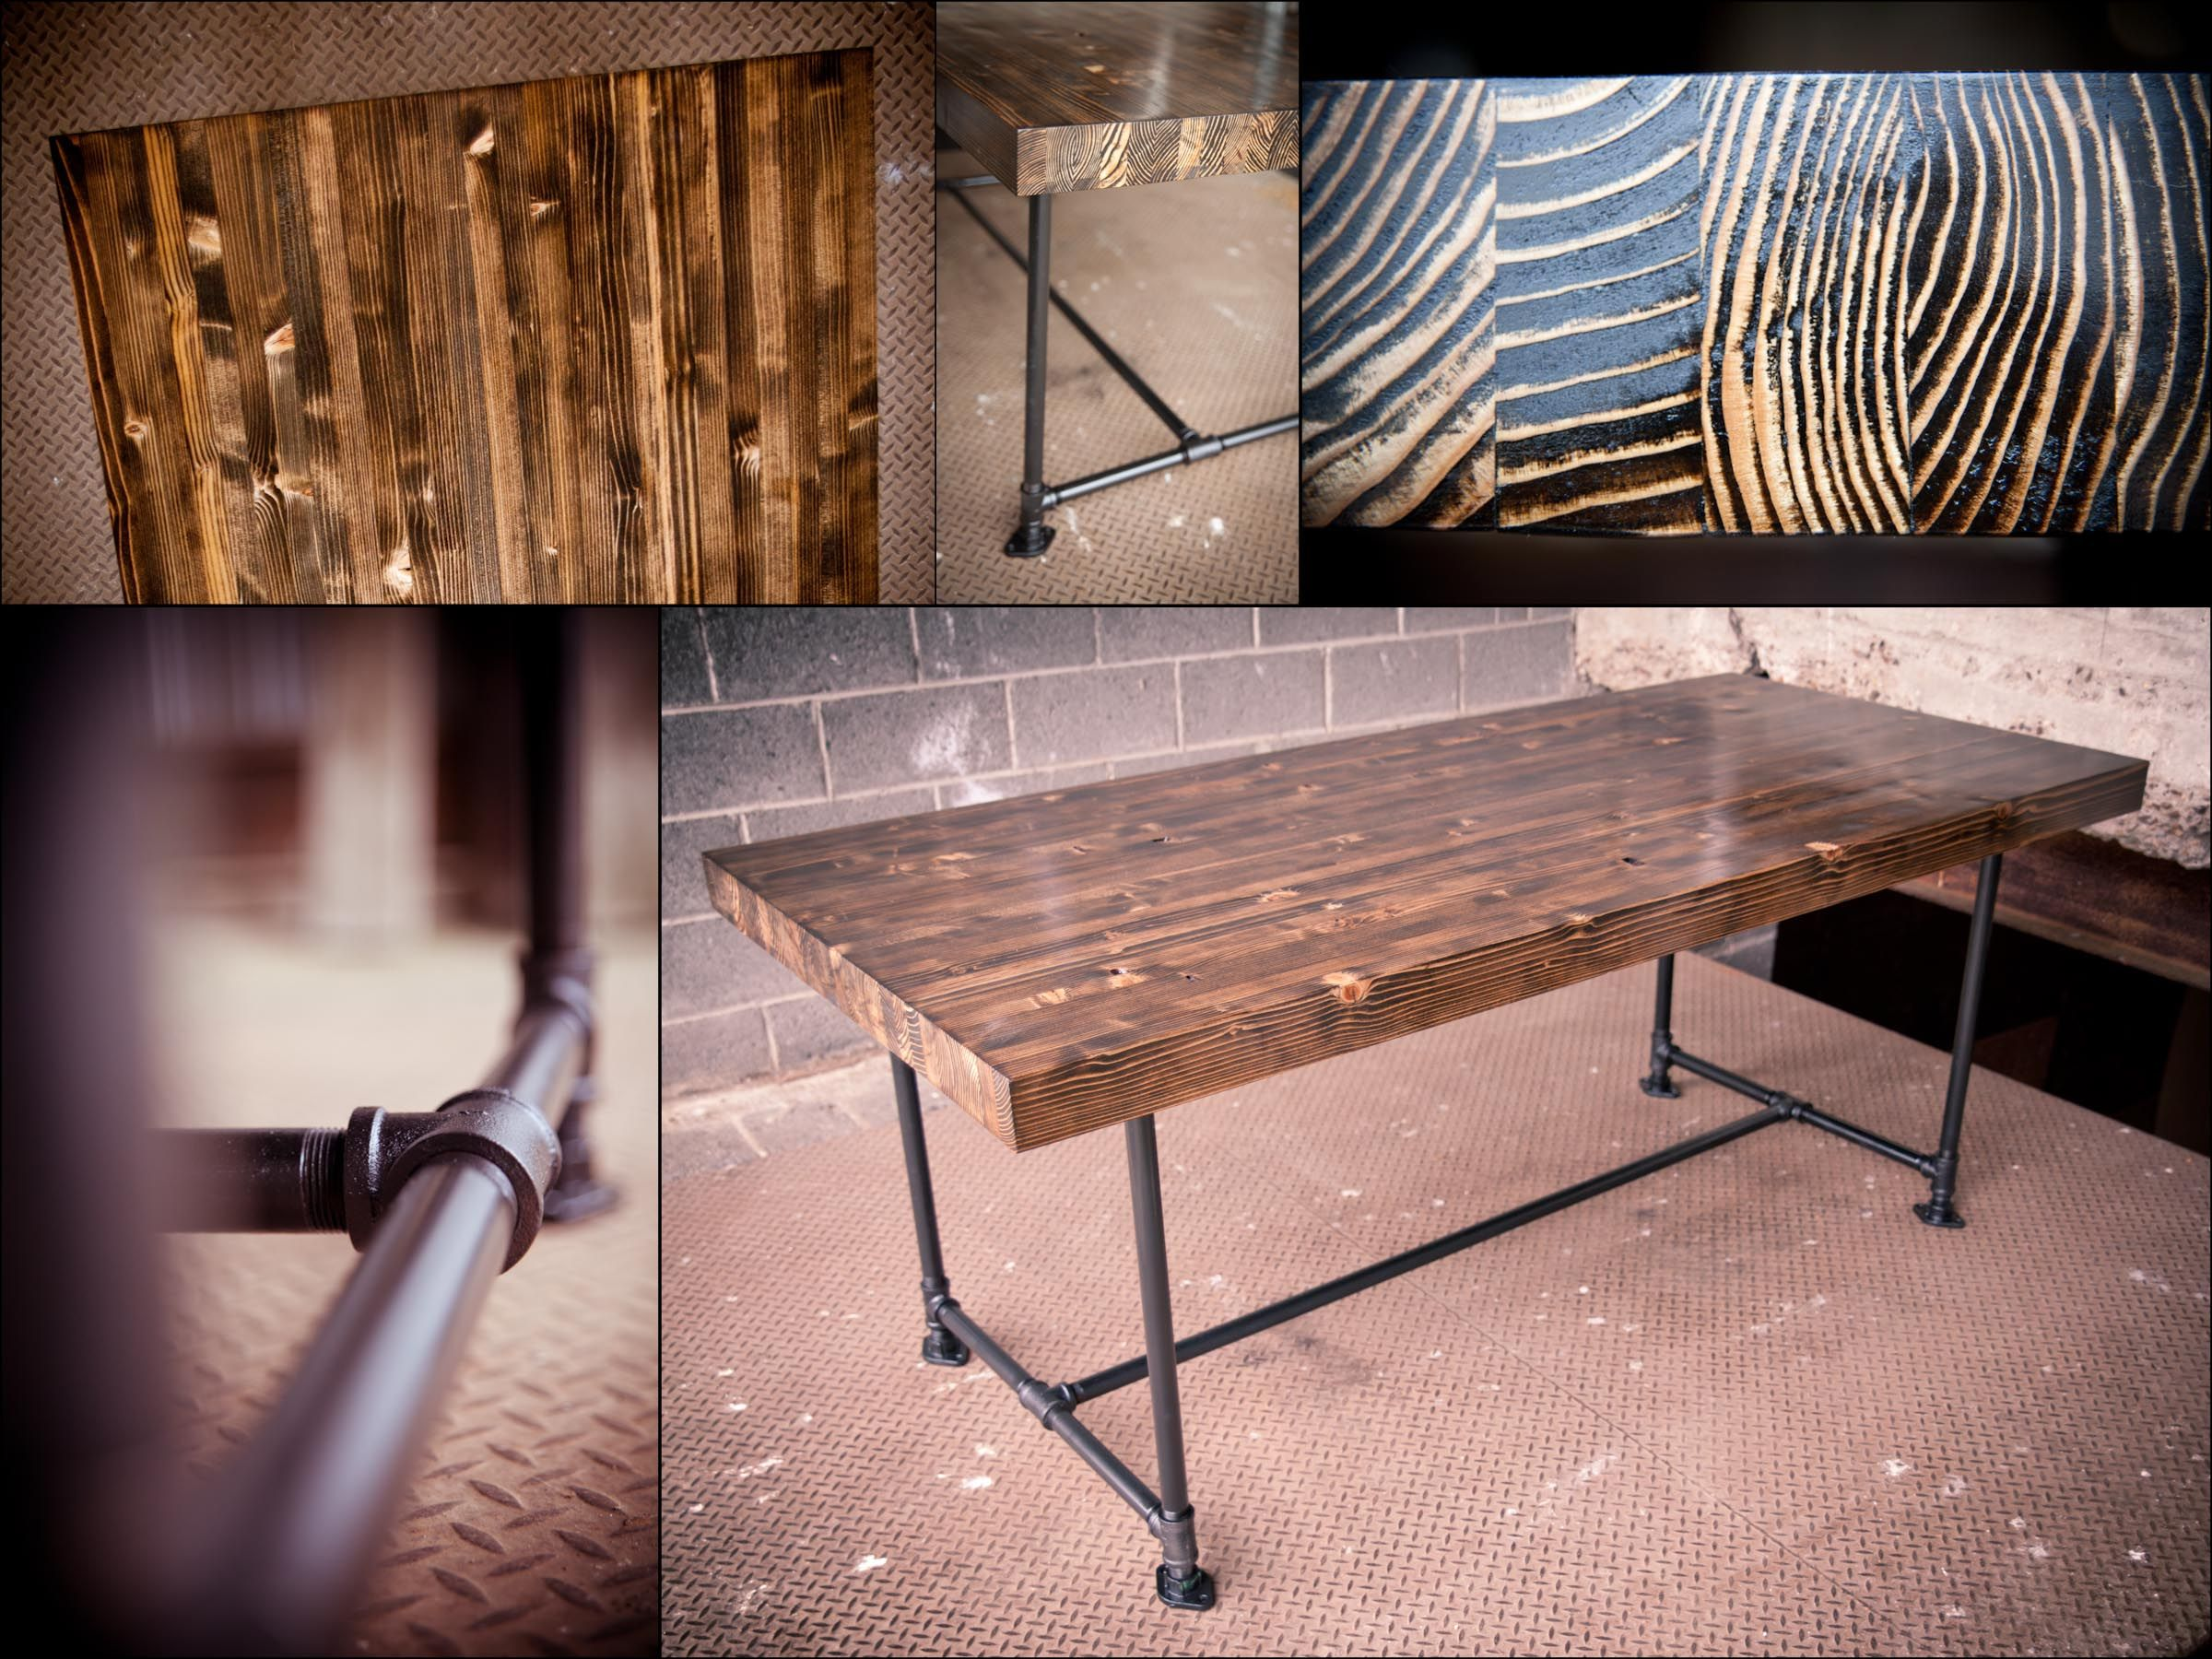 Industrial butcher block table. Farmhouse Table with